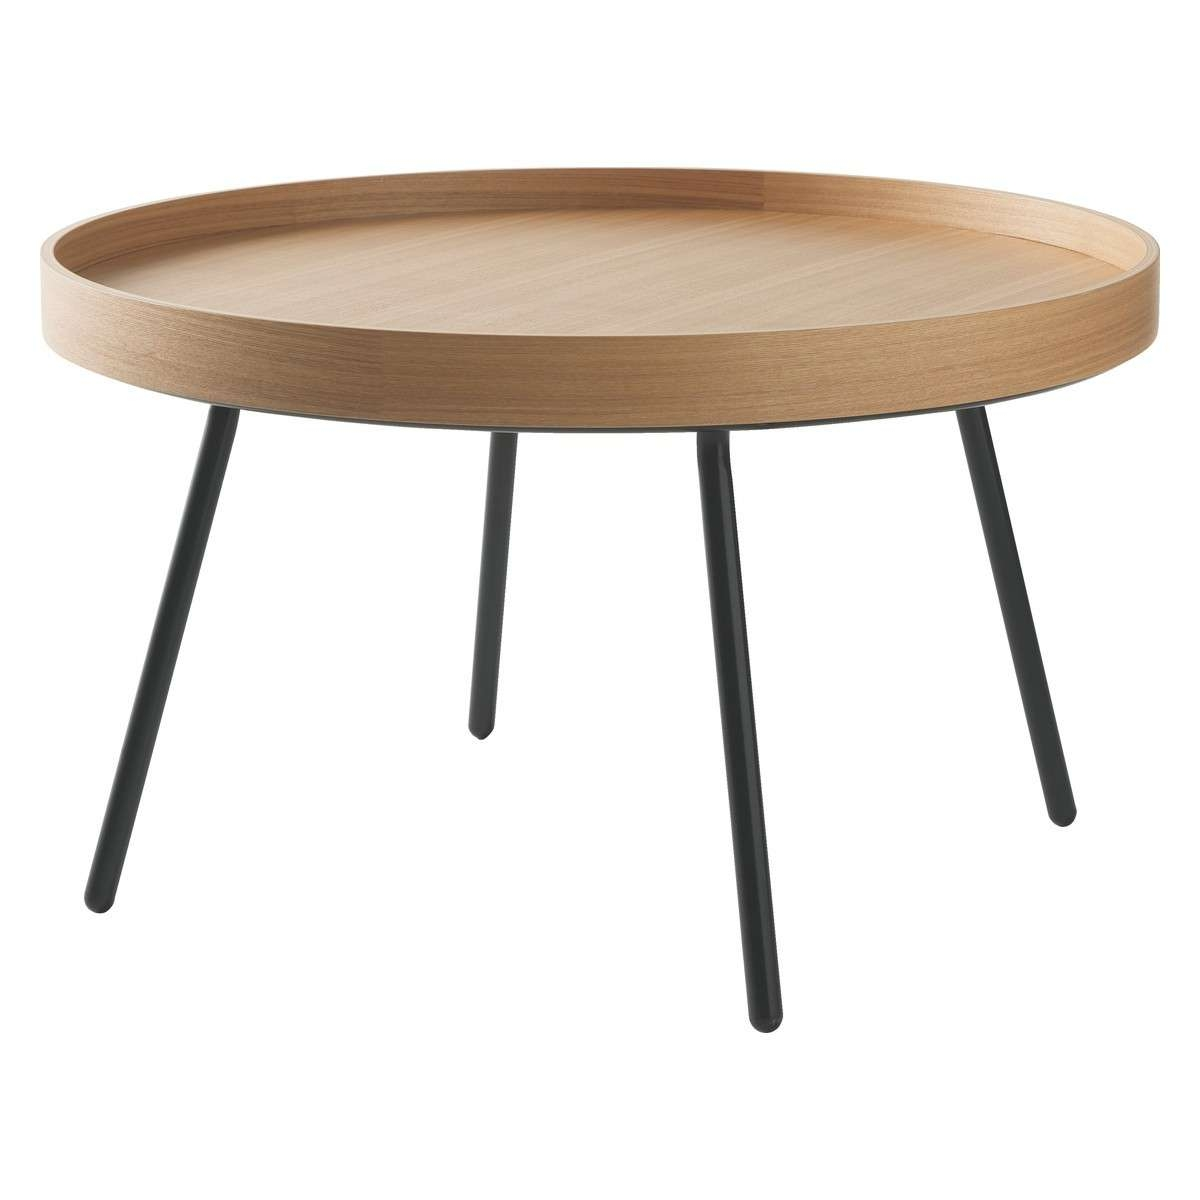 Preferred Round Oak Coffee Tables Throughout Larke Round Oak Tray Coffee Table (View 14 of 20)